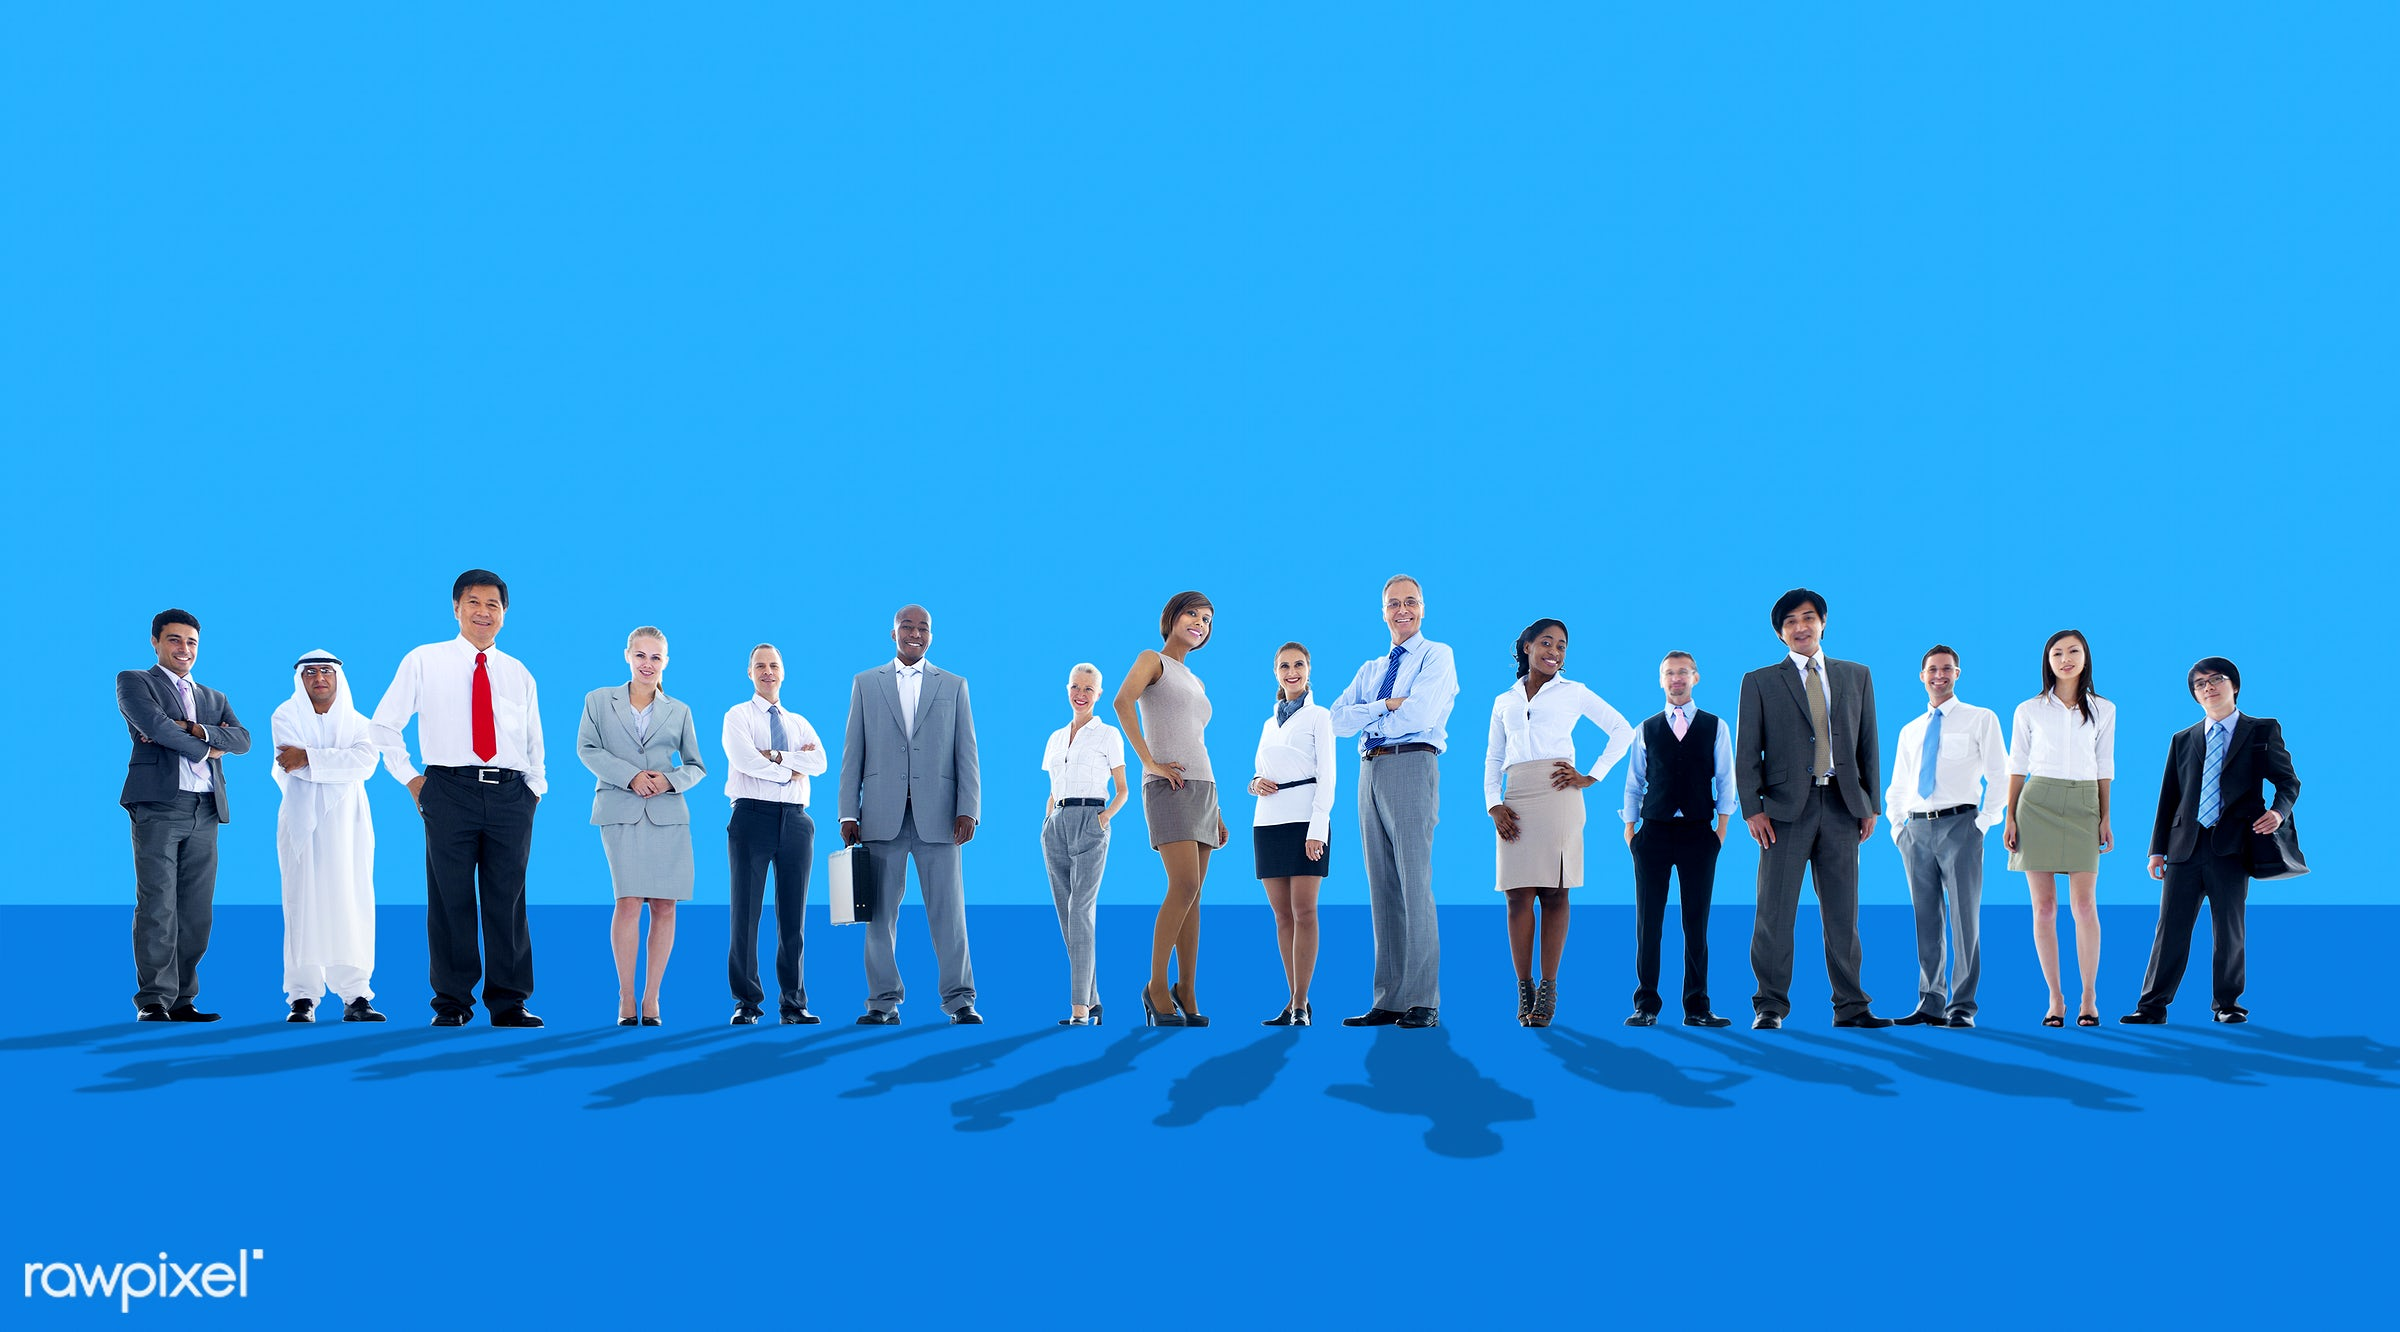 backdrop, background, blue, business, business people, businessmen, businesswomen, corporate, diverse, diversity, ethnic,...